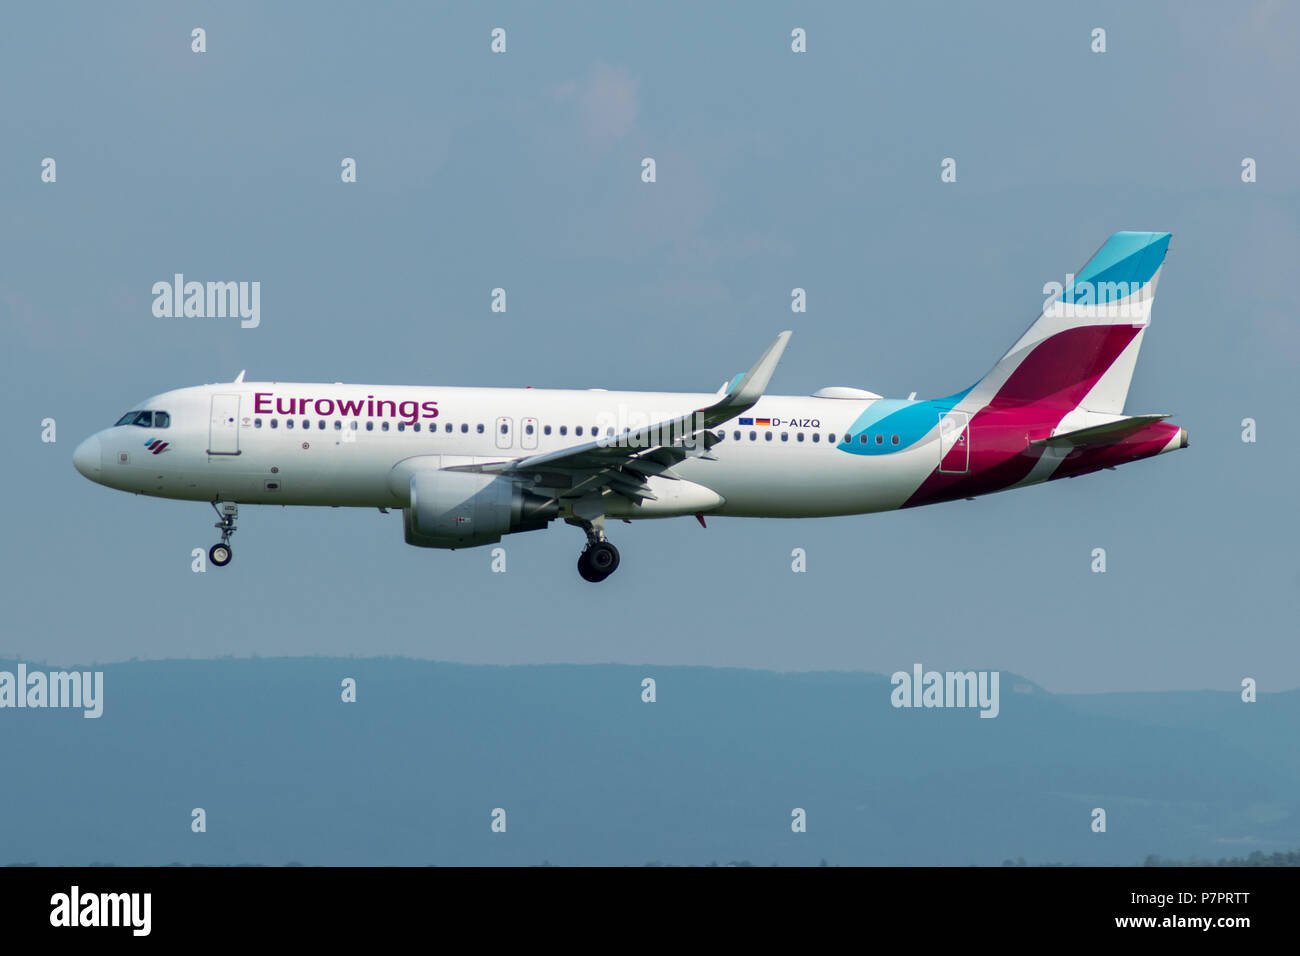 eurowings airbus is approching stuttgart airport, germany - Stock Image